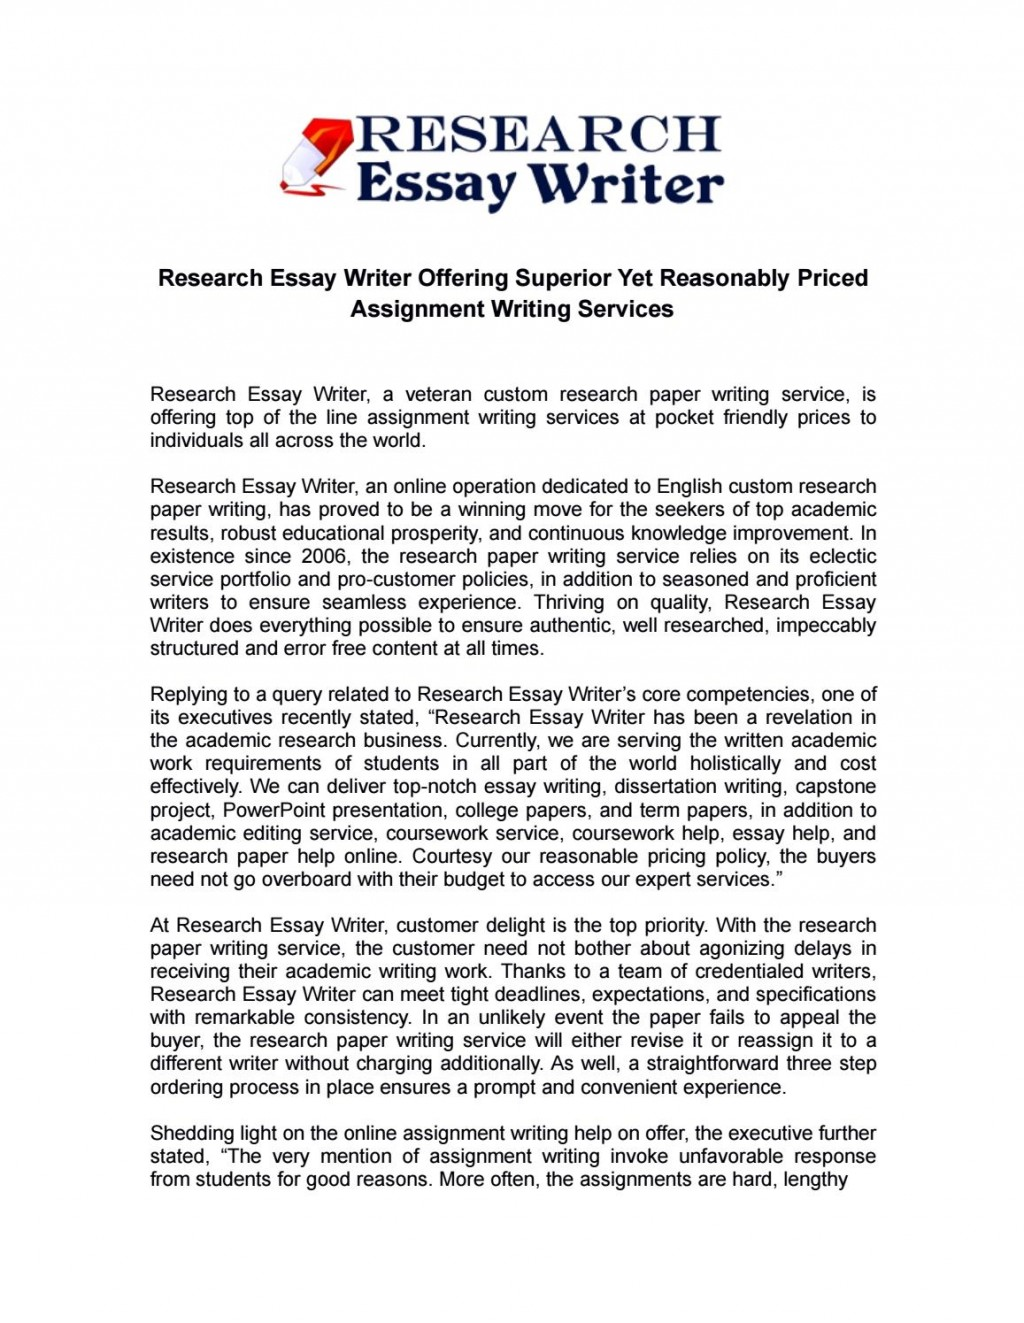 020 Custom Research Paper Writing Service Page 1 Awesome Term Services Large